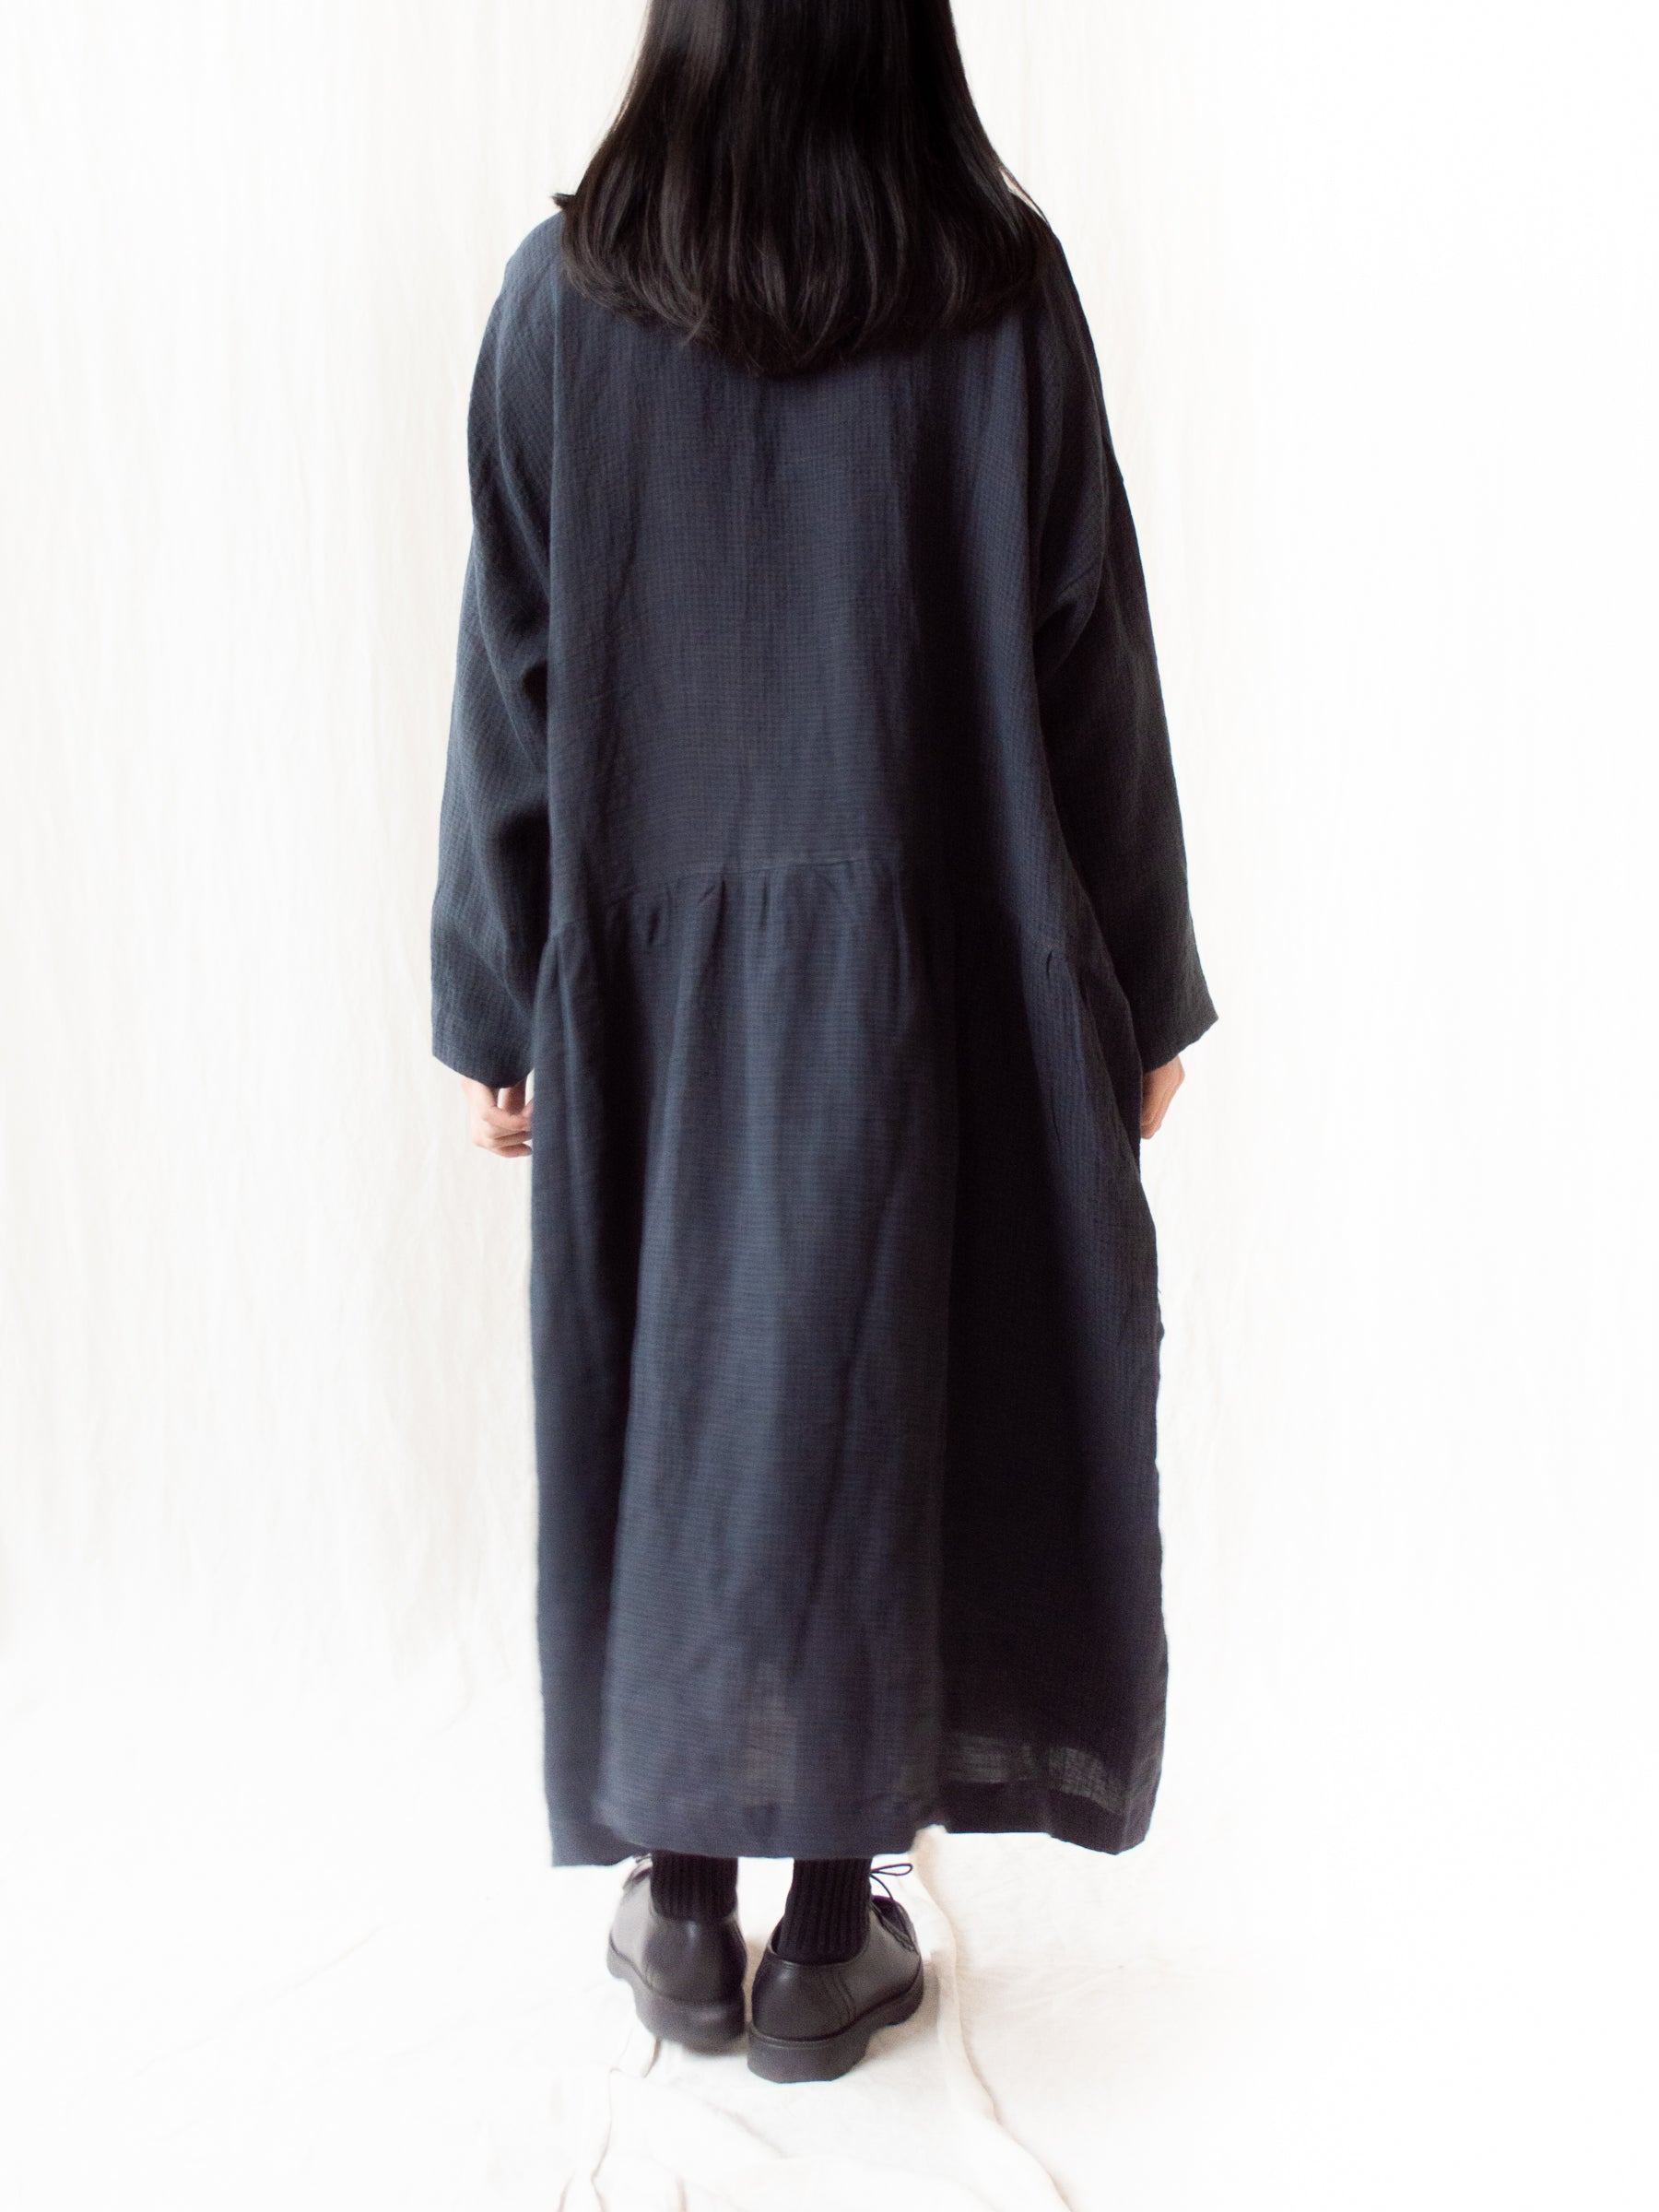 Linen AZUMADAKI Gingham Dress - Black